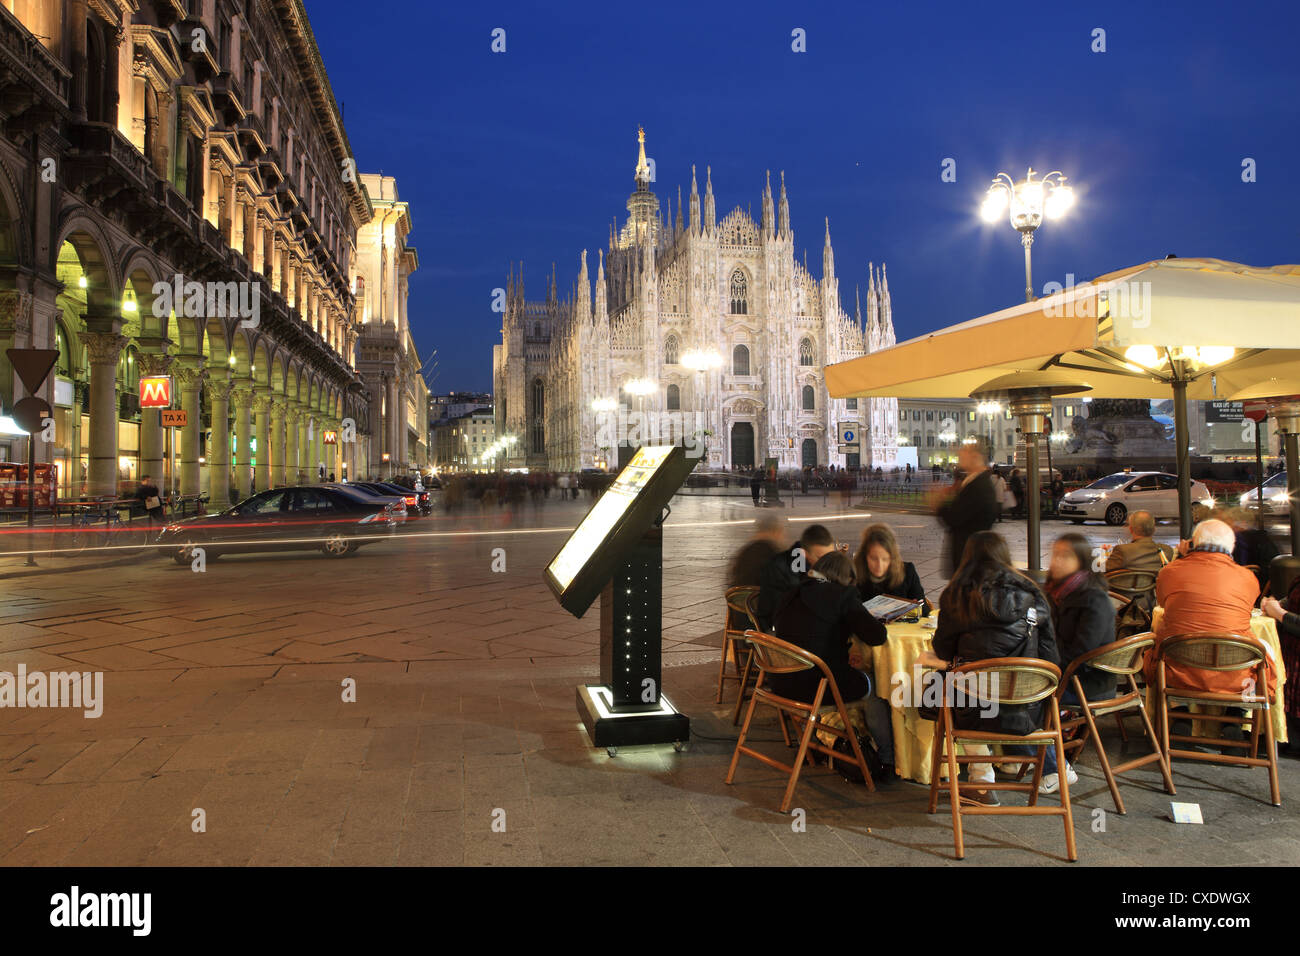 Restaurant in Piazza Duomo at dusk, Milan, Lombardy, Italy, Europe Stock Photo